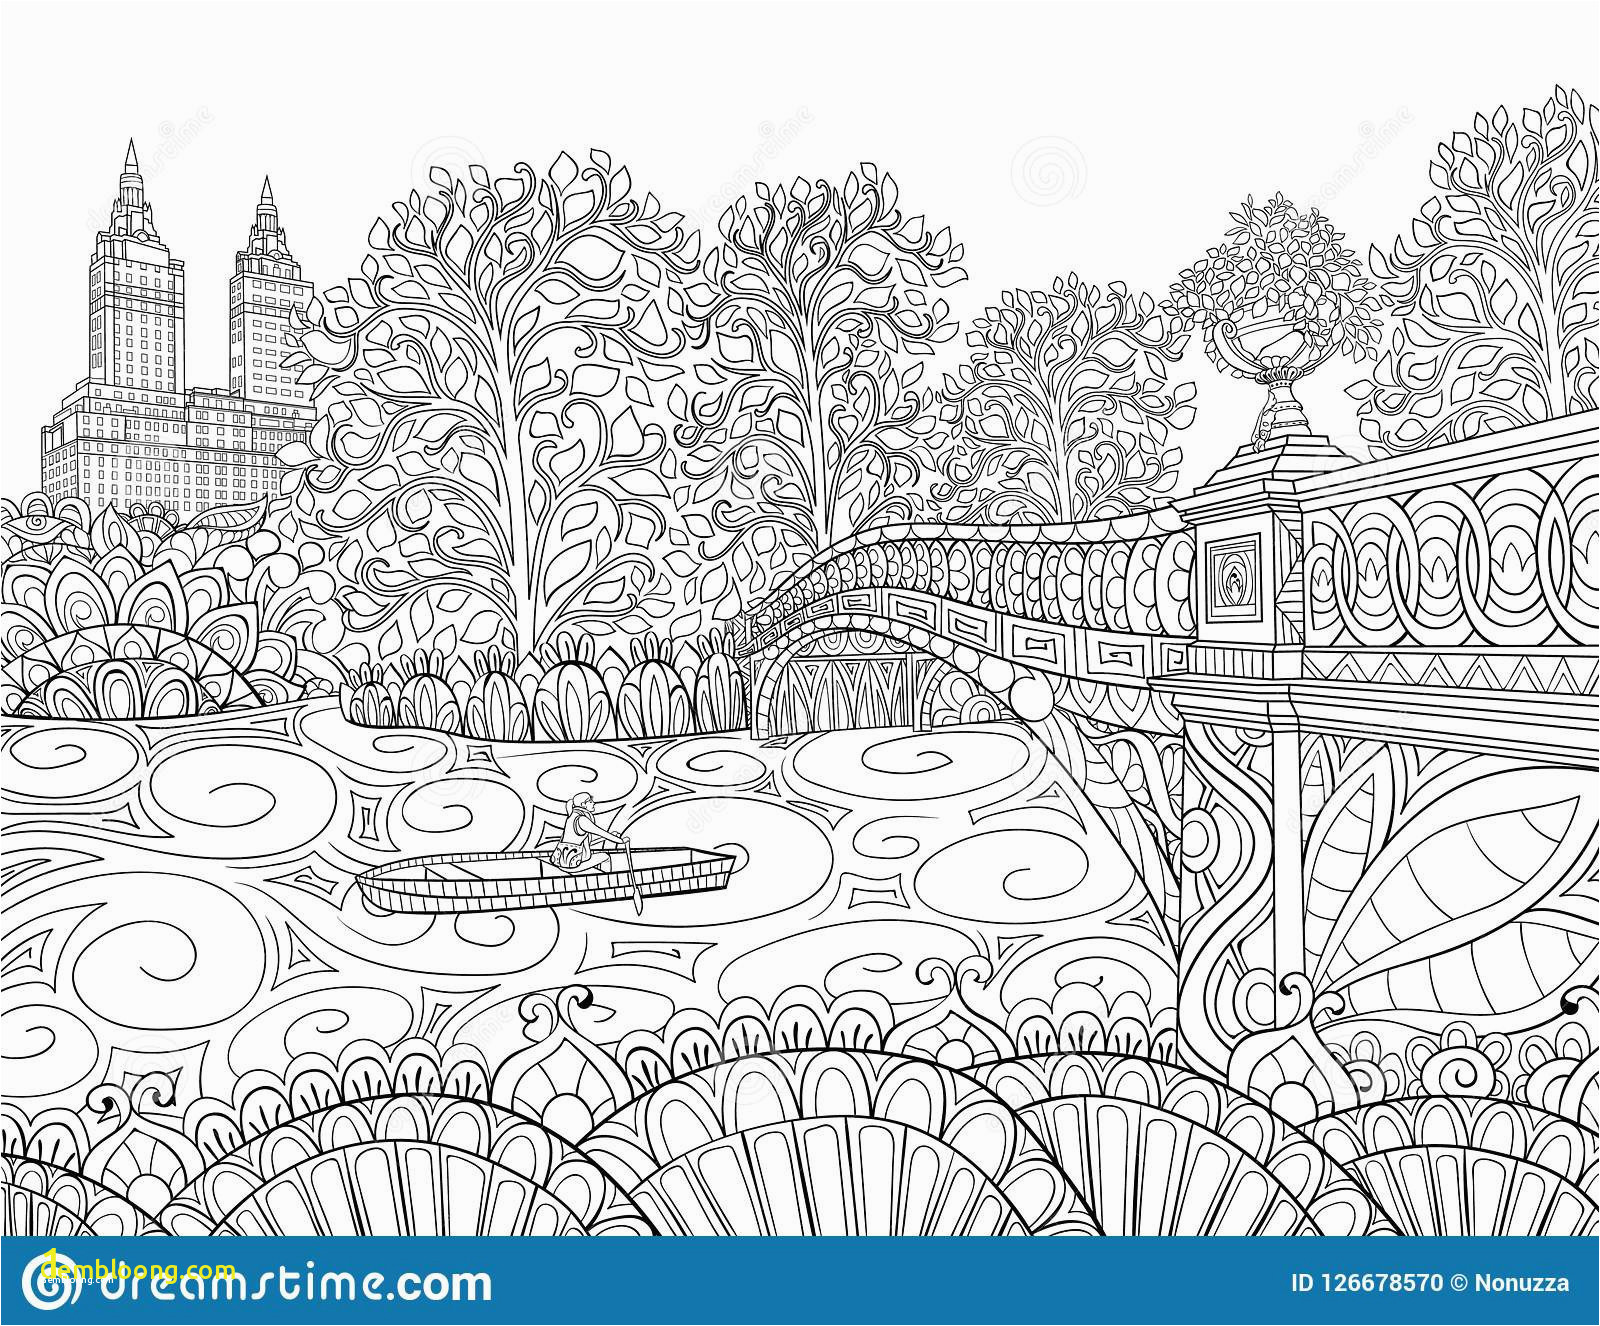 large coloring pages for adults best of coloring pages bible coloring book for adults best of large coloring pages for adults